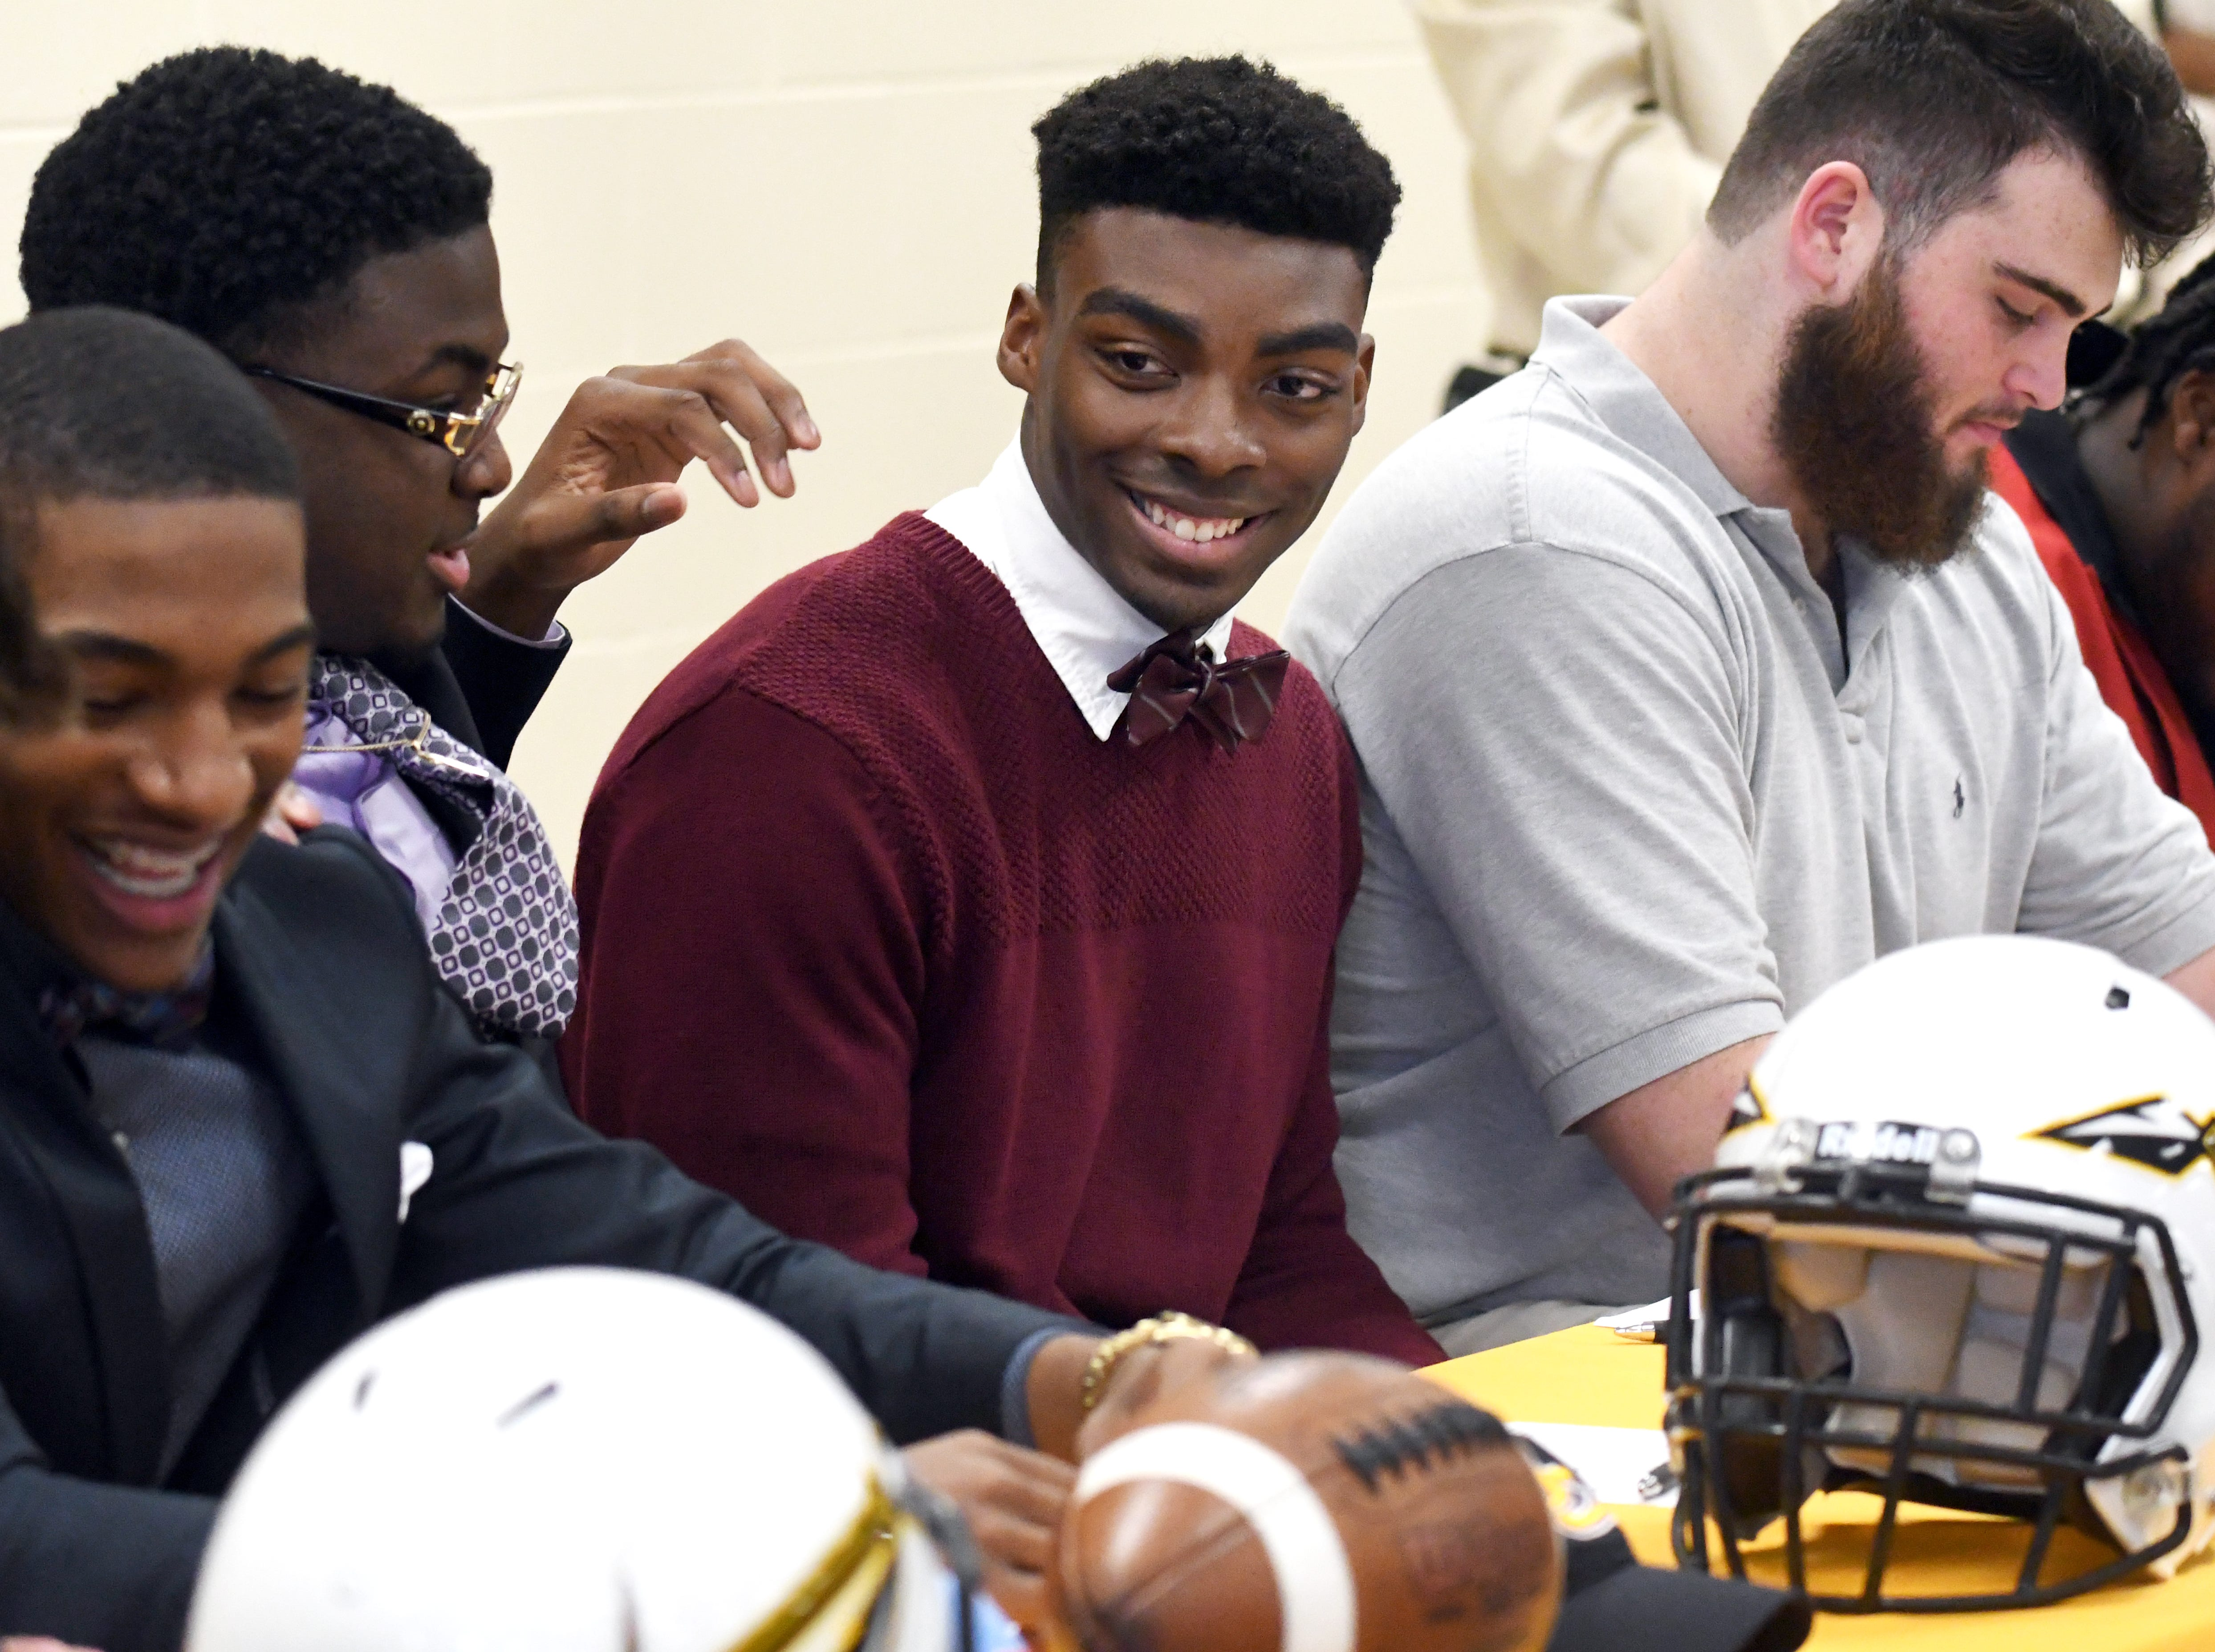 Oak Grove athlete Johnny Magee commits to Jone County Junior College to play football during National Signing Day in Hattiesburg on Wednesday, February 6, 2019.